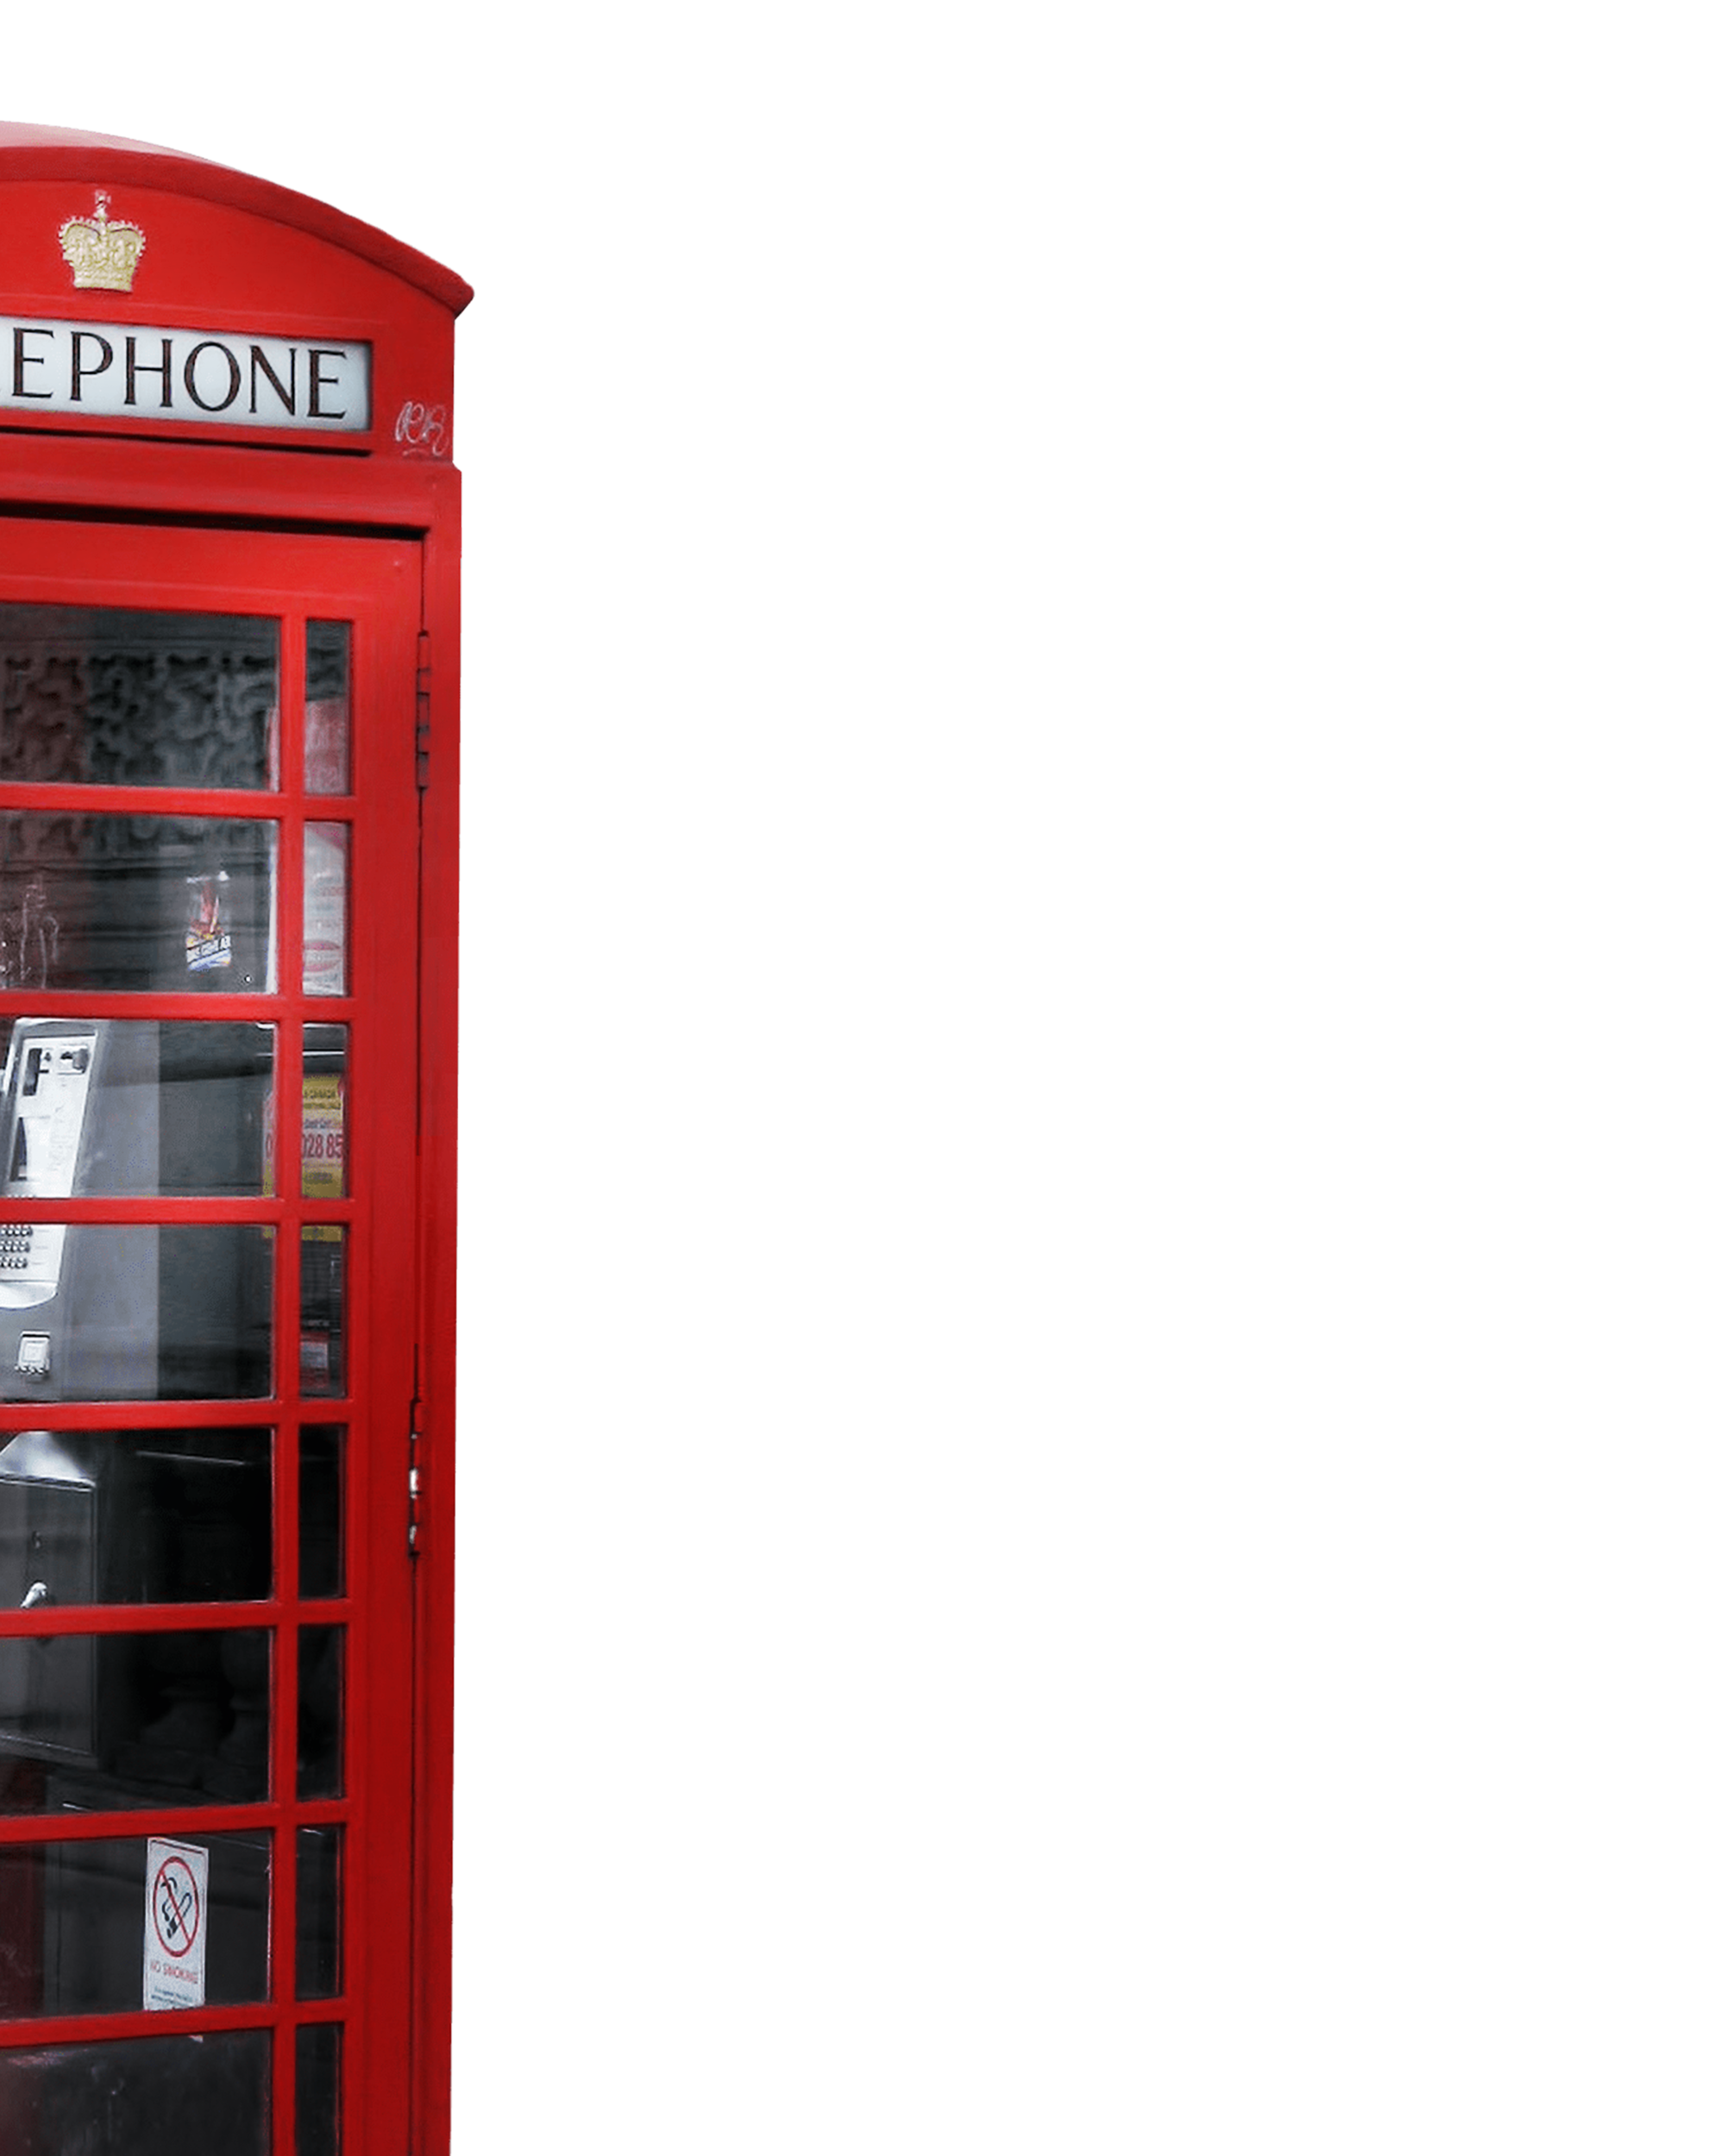 telephone both png